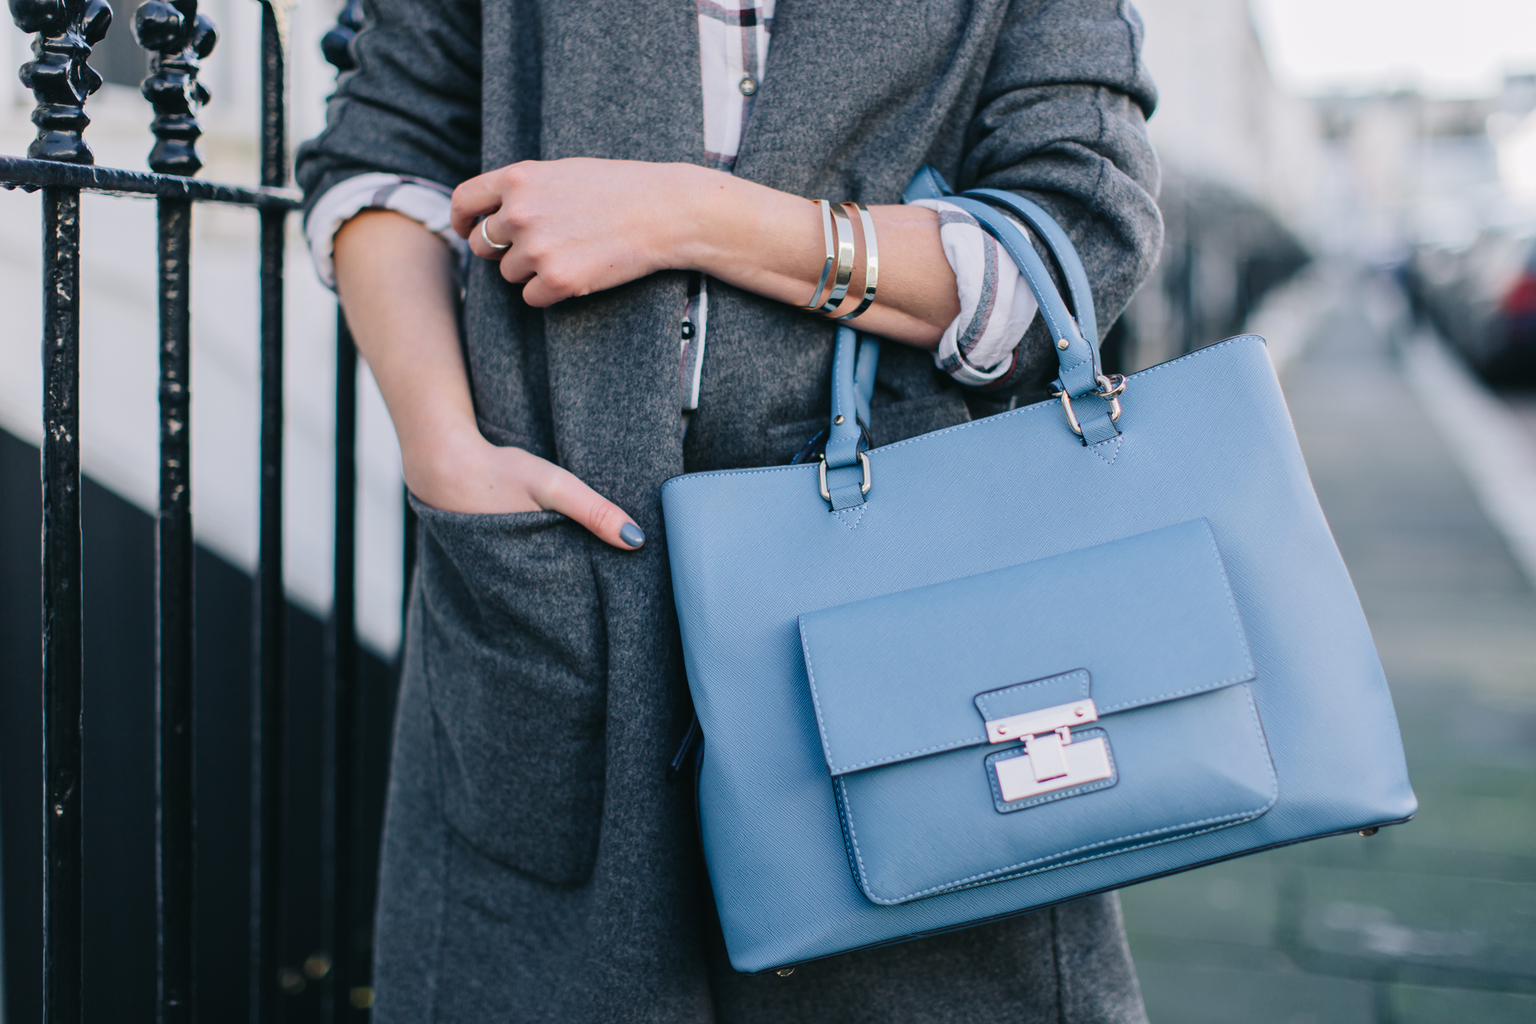 A CASE OF THE STYLE BLUES